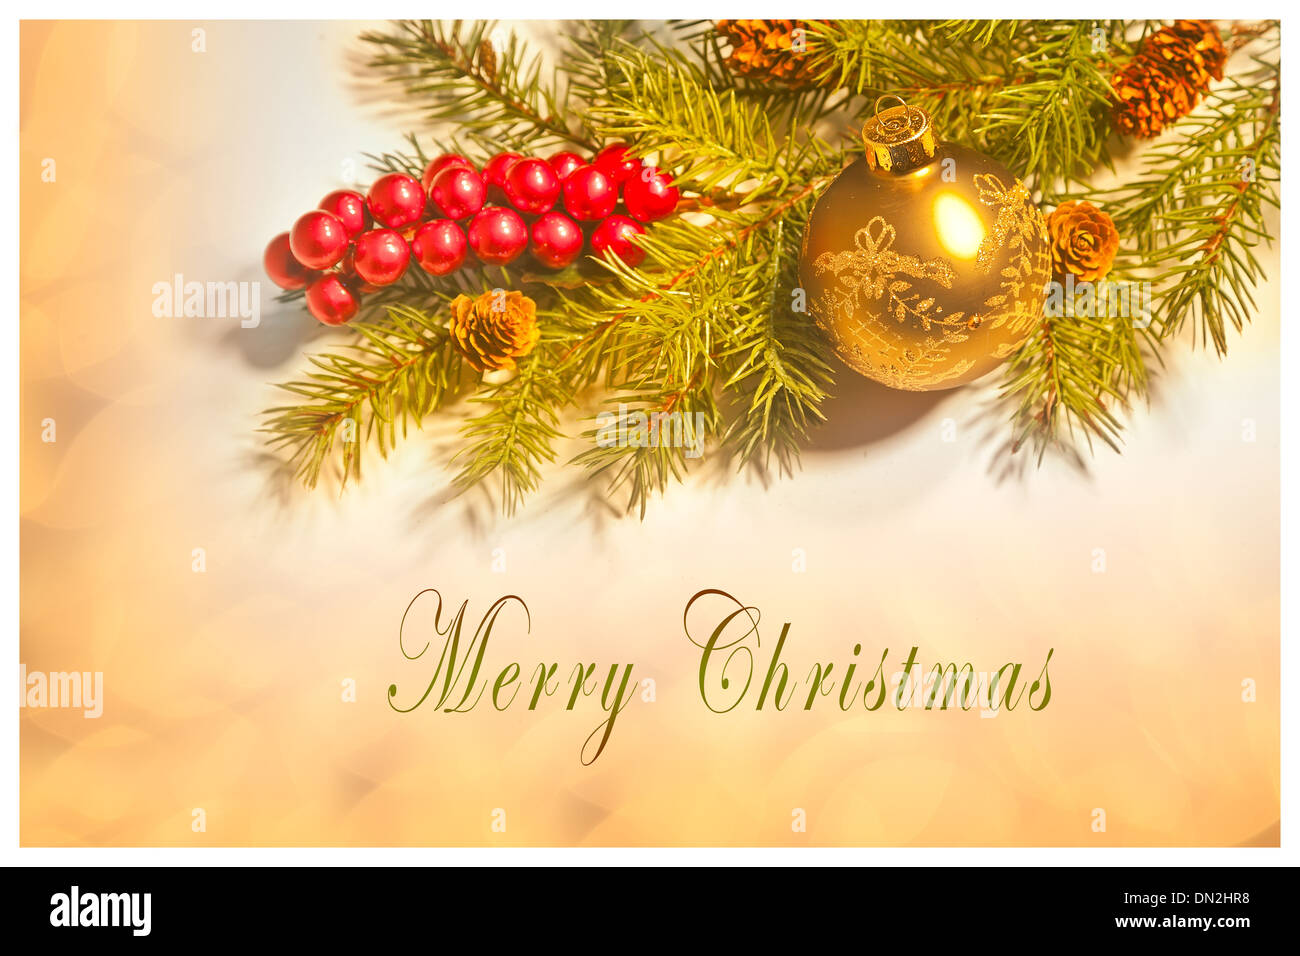 Merry Christmas card, with Christmas decorations, soft background lights and text. Room for more text. - Stock Image